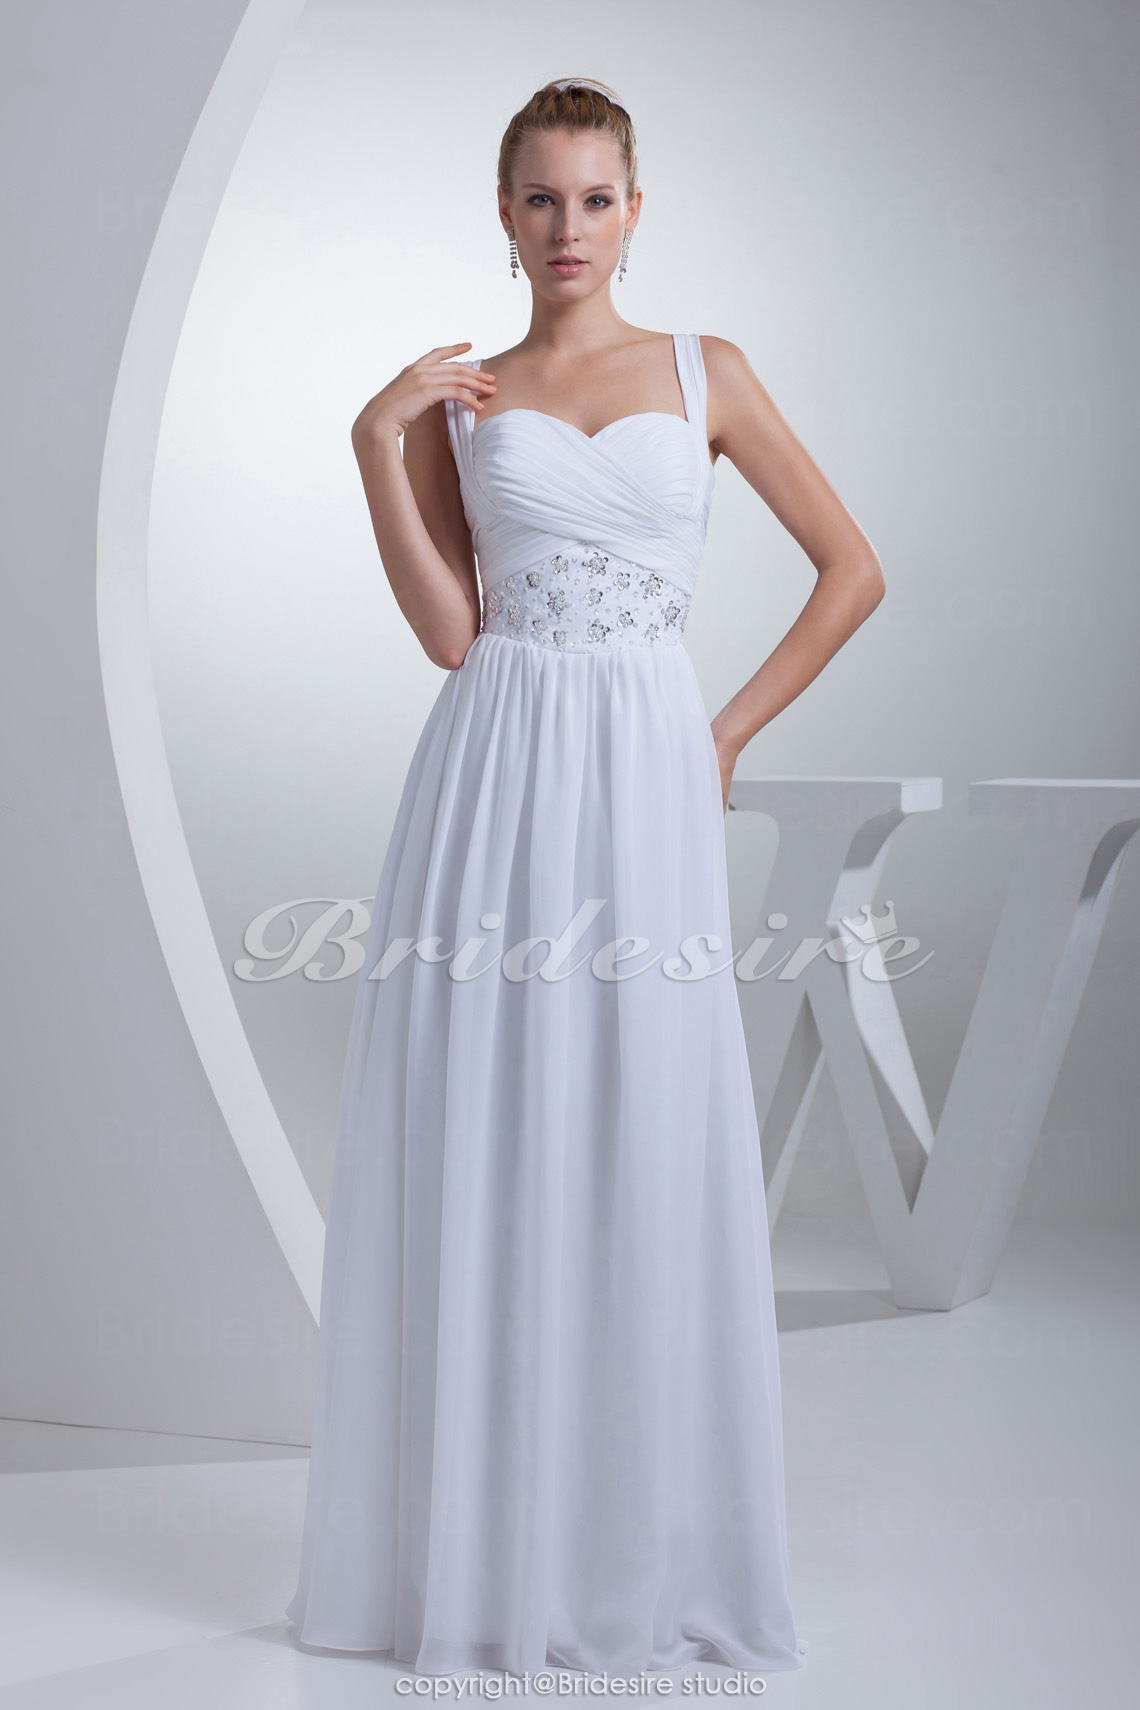 Sheath/Column Sweetheart Straps Floor-length Sleeveless Chiffon Wedding Dress